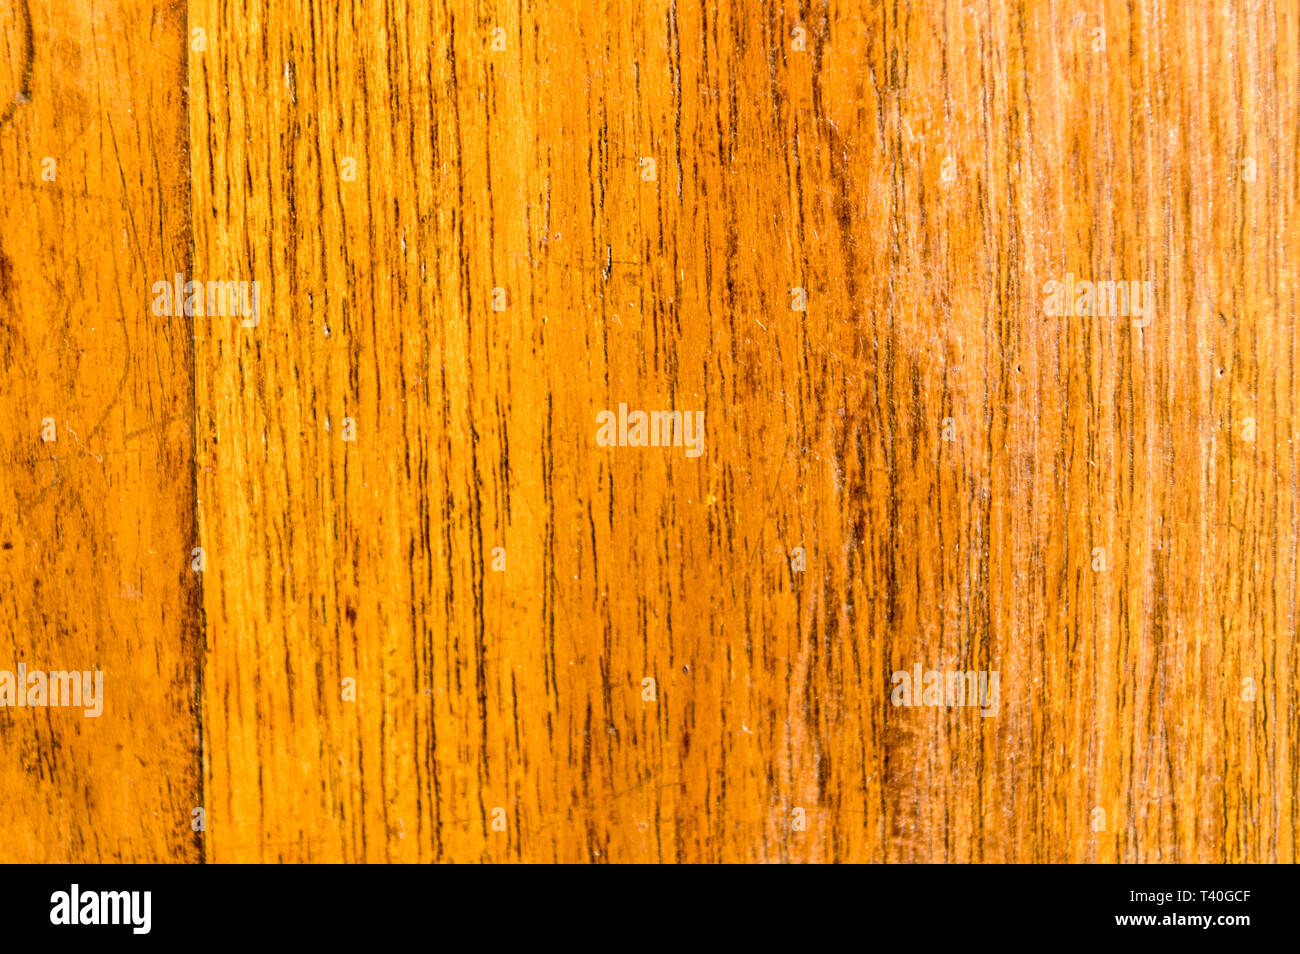 Yellow colored old natural wooden board textured flooring background. Surface of oak wood for design and decoration. Studio shot with copy space room  - Stock Image